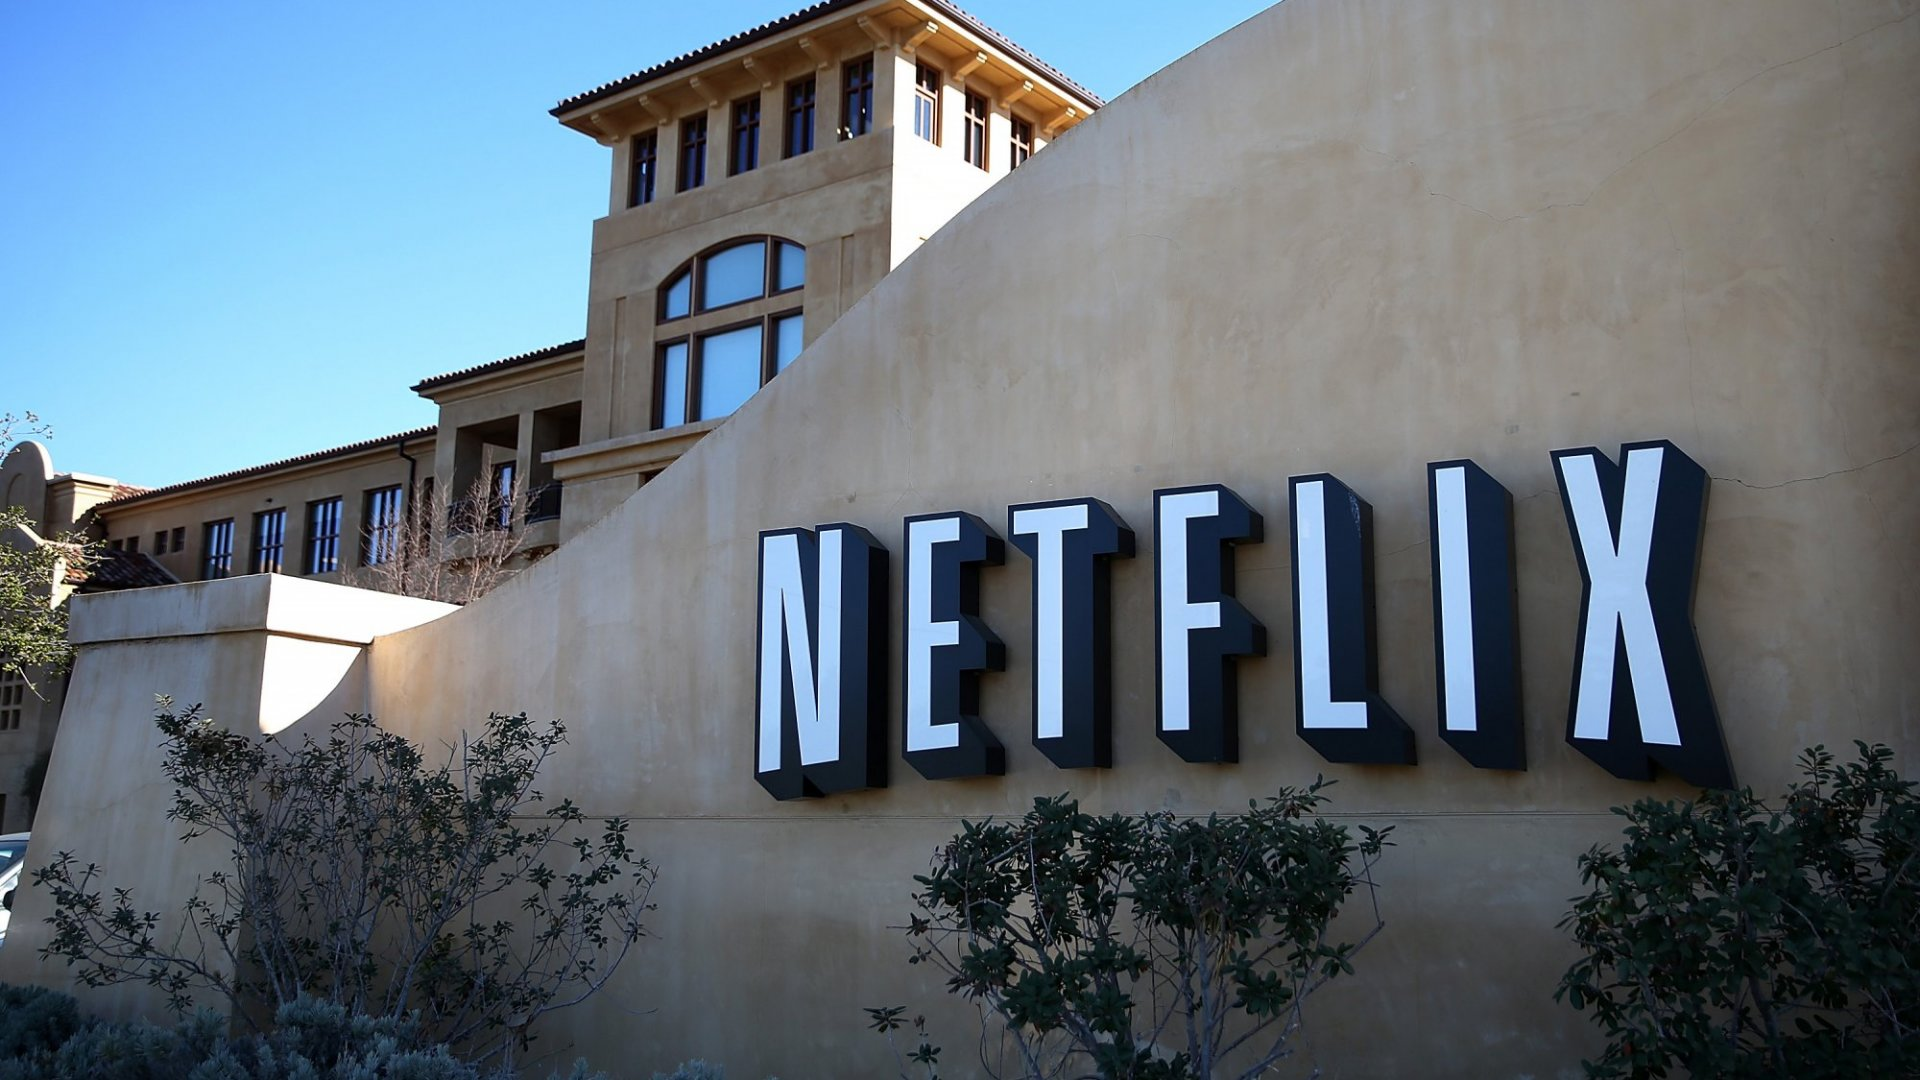 3 Ways Netflix Created a Culture of High-Performing Employees